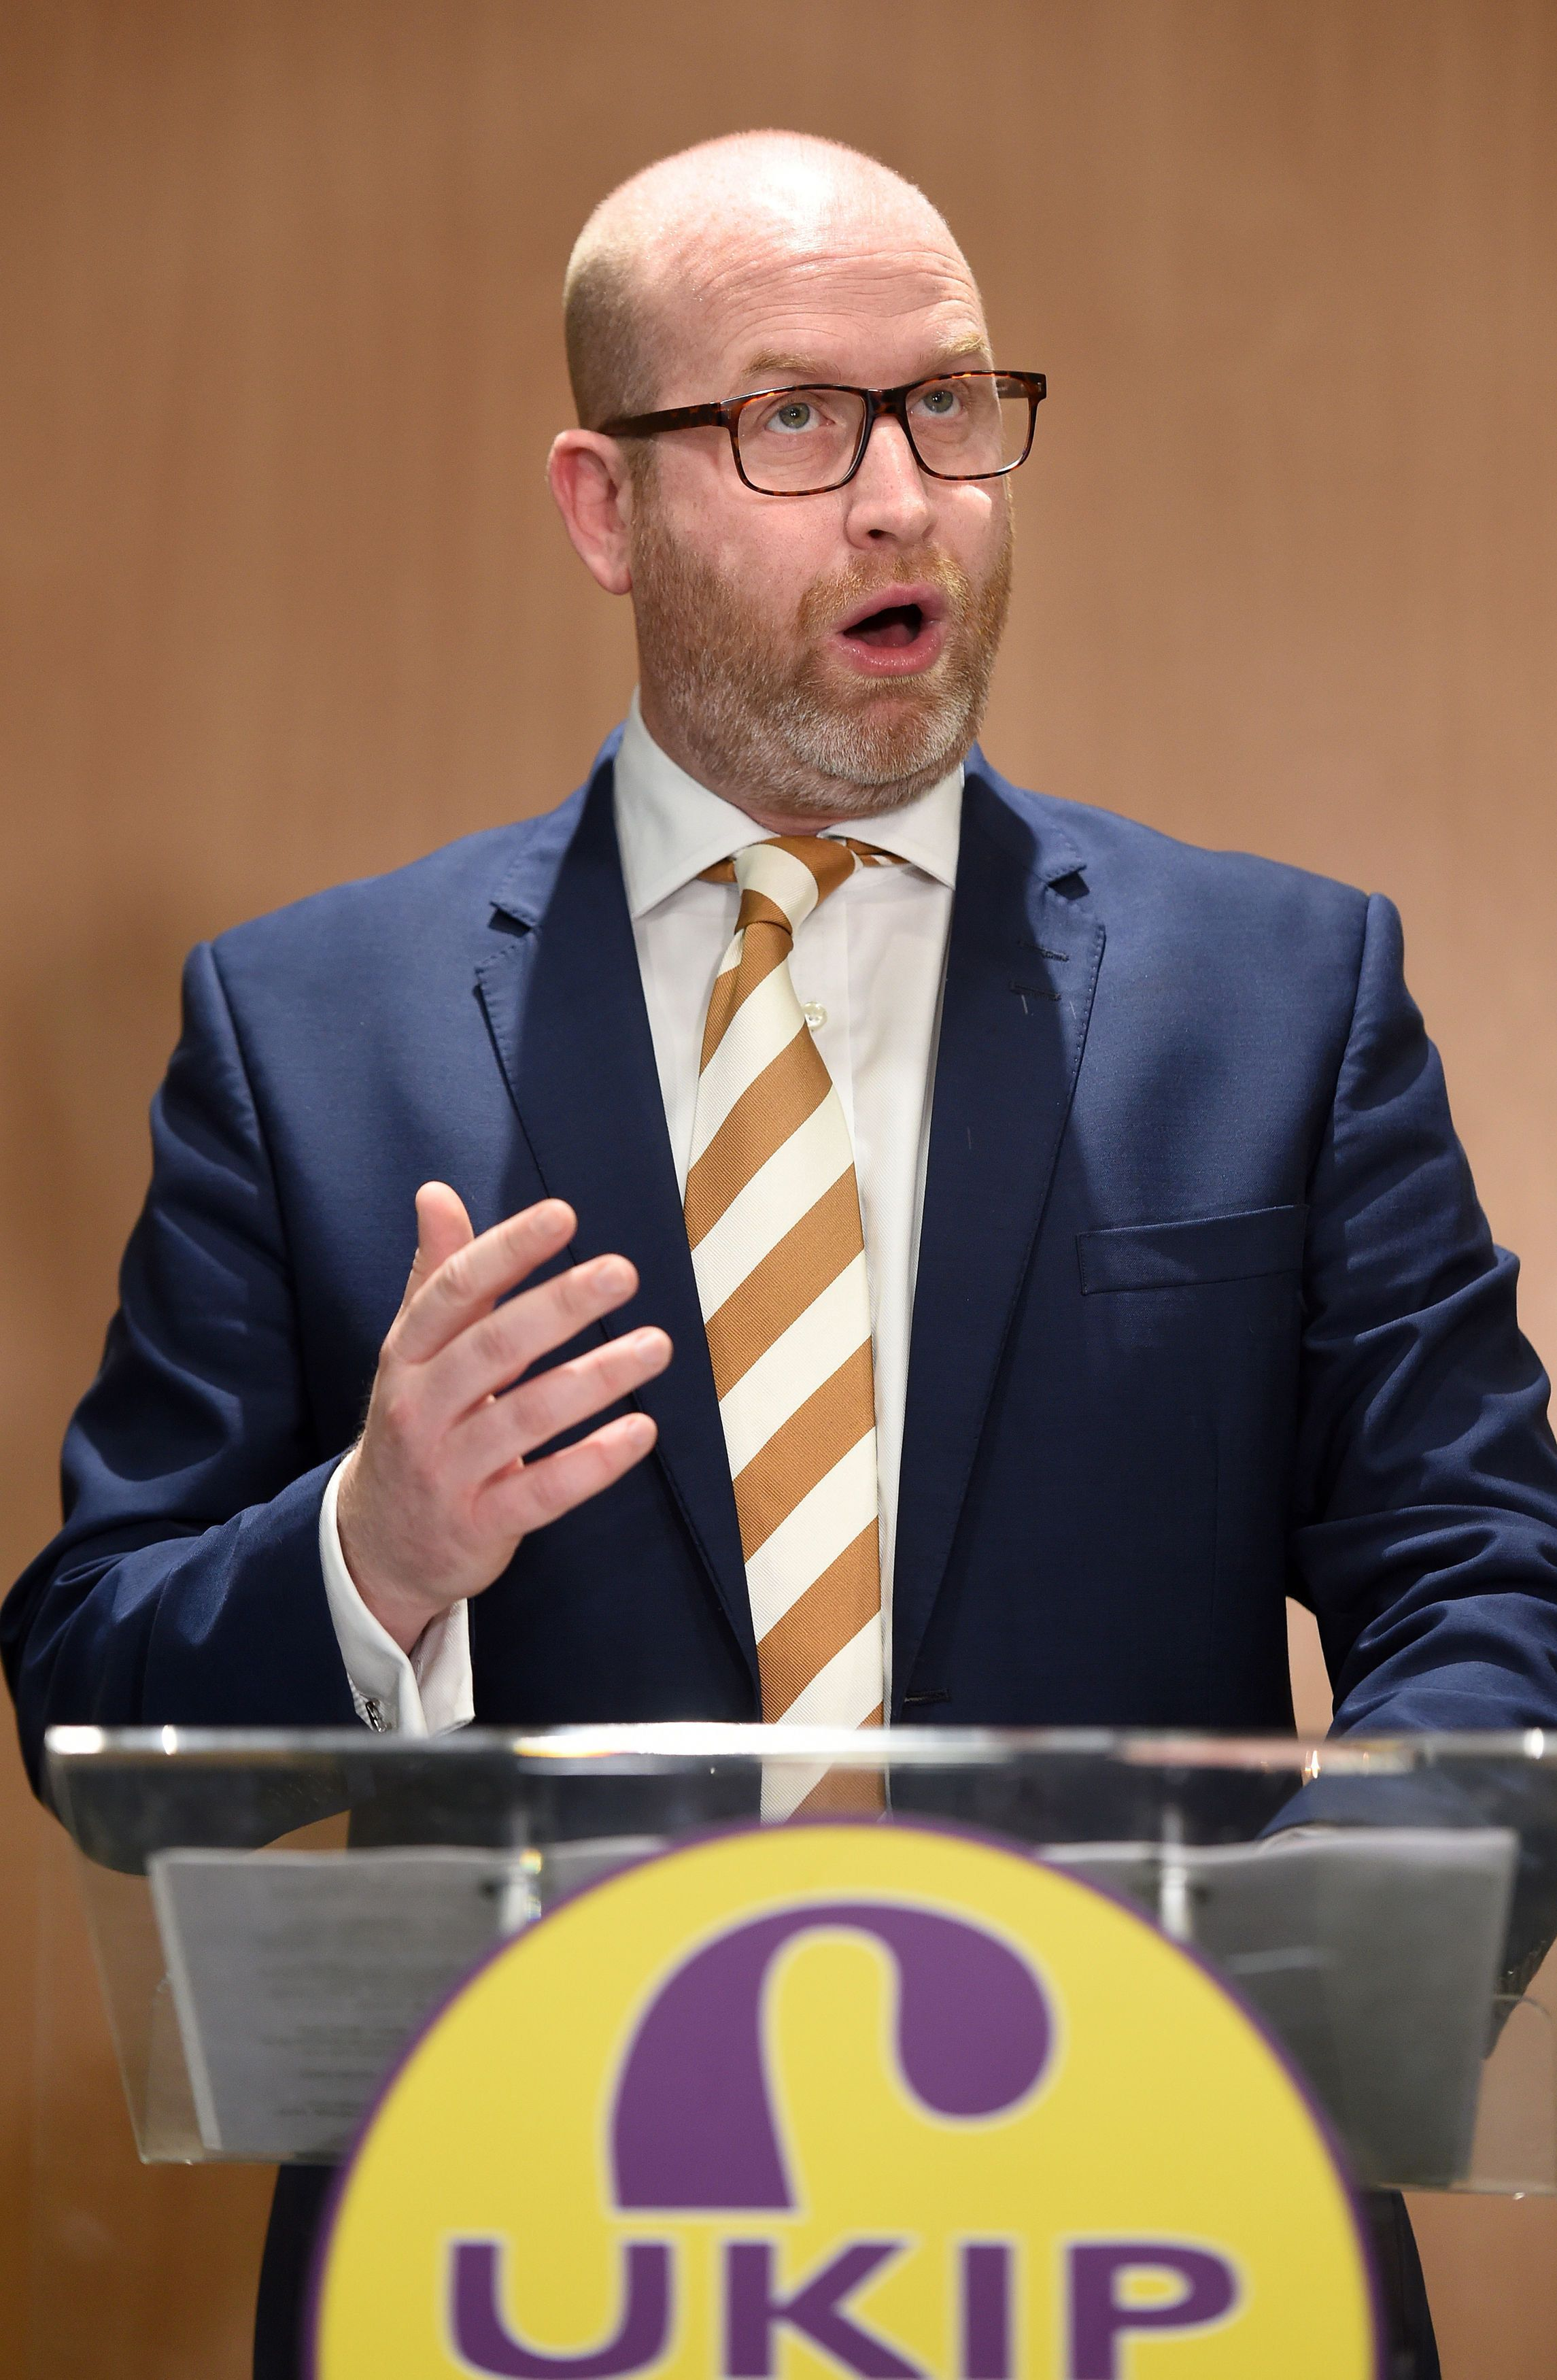 Paul Nuttall Becomes Latest Ukipper To Jump Ship Because Of Tommy